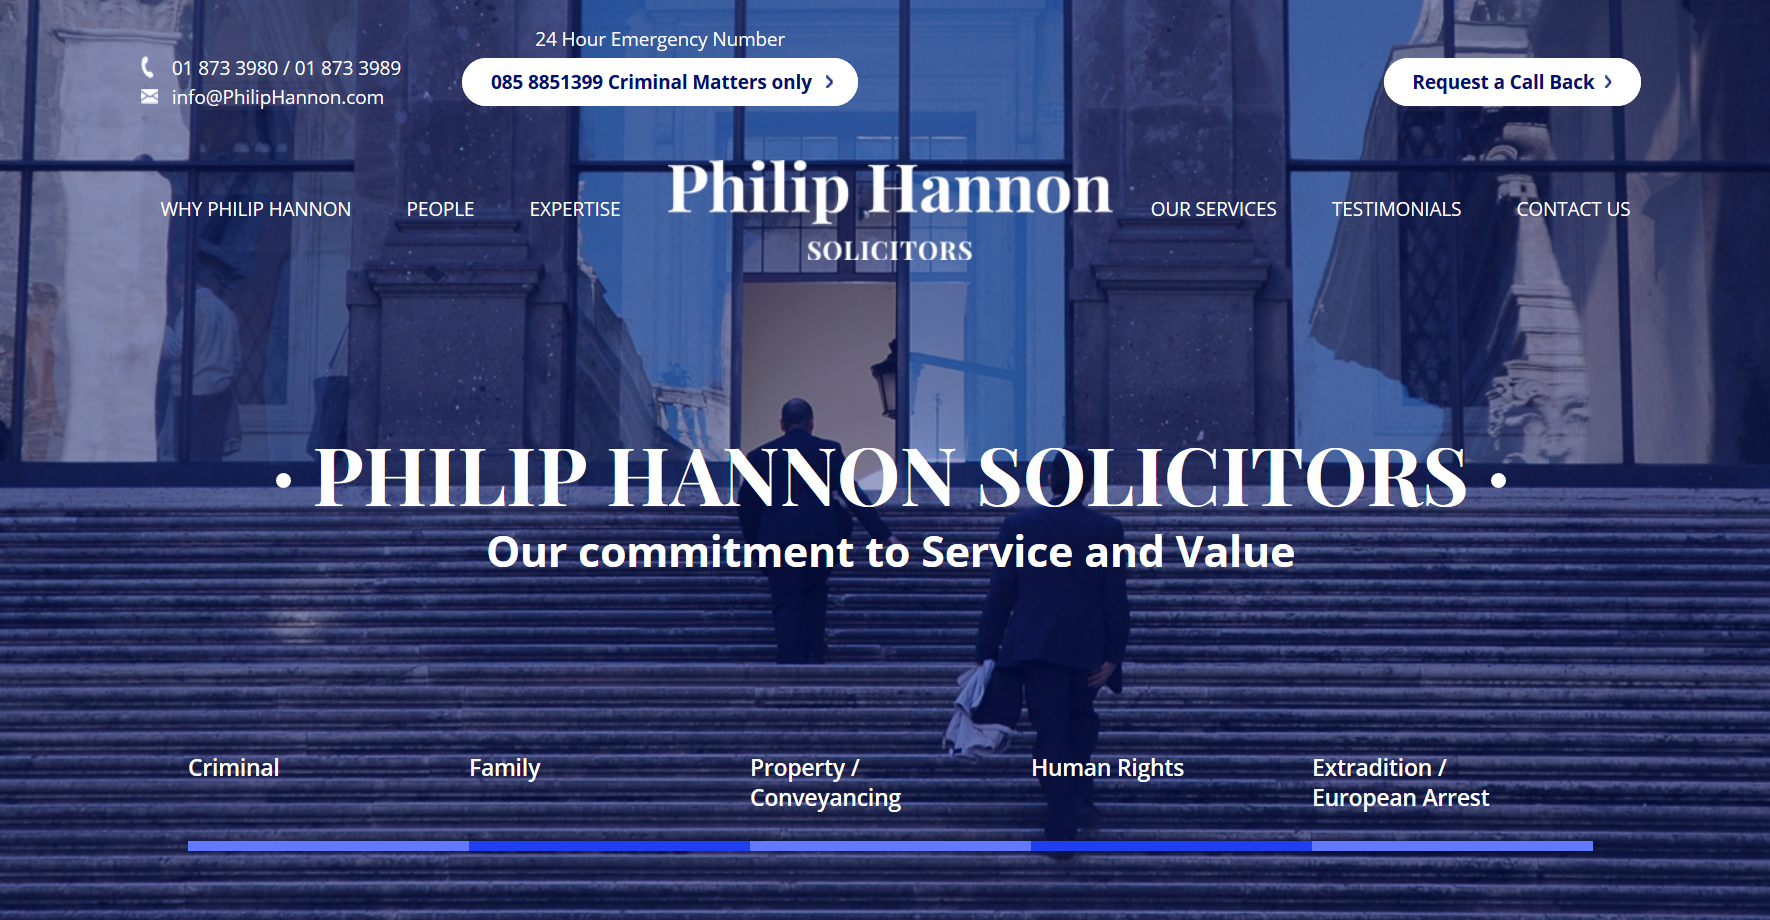 Philip Hannon Solicitors